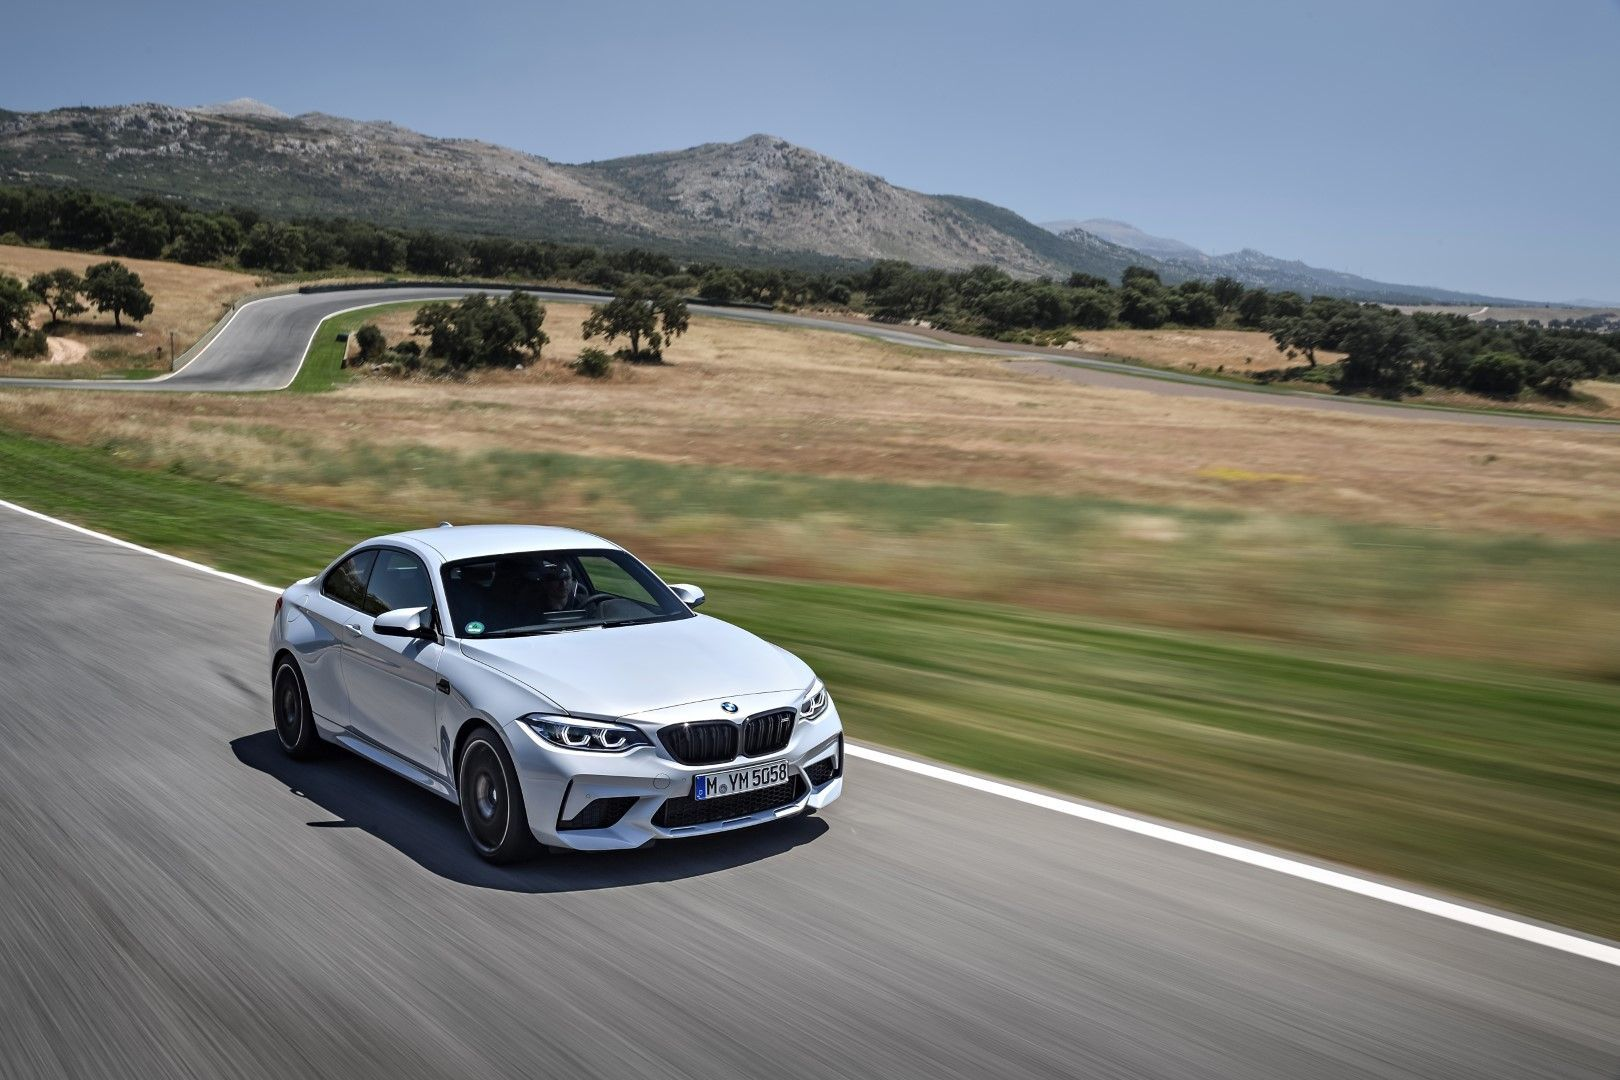 2019 Bmw M2 Competition With Images Bmw Bmw Concept Coupe